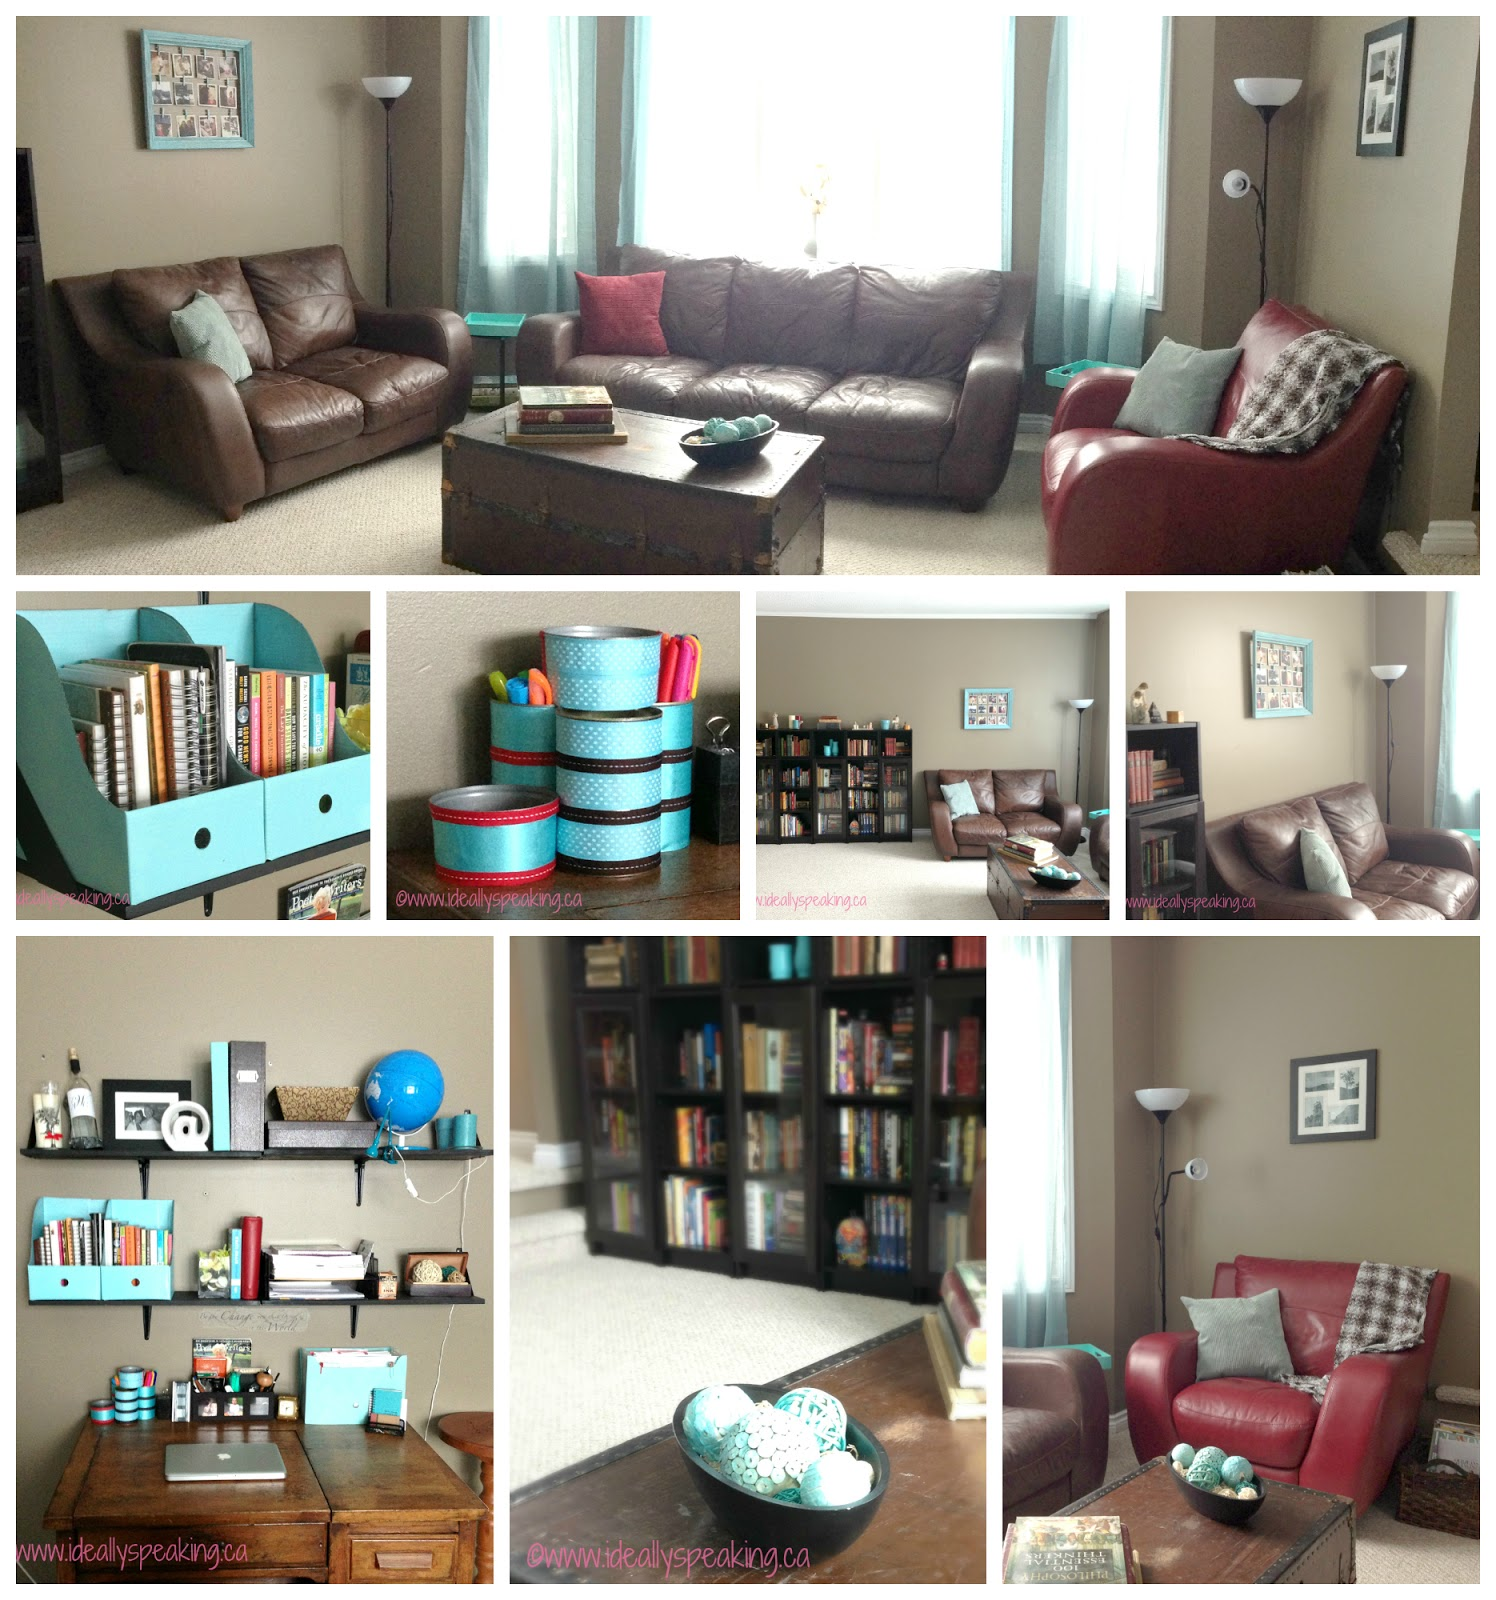 Pinterest Decorating Ideas For Home: Home Design Image Ideas: Home Office Ideas Pinterest